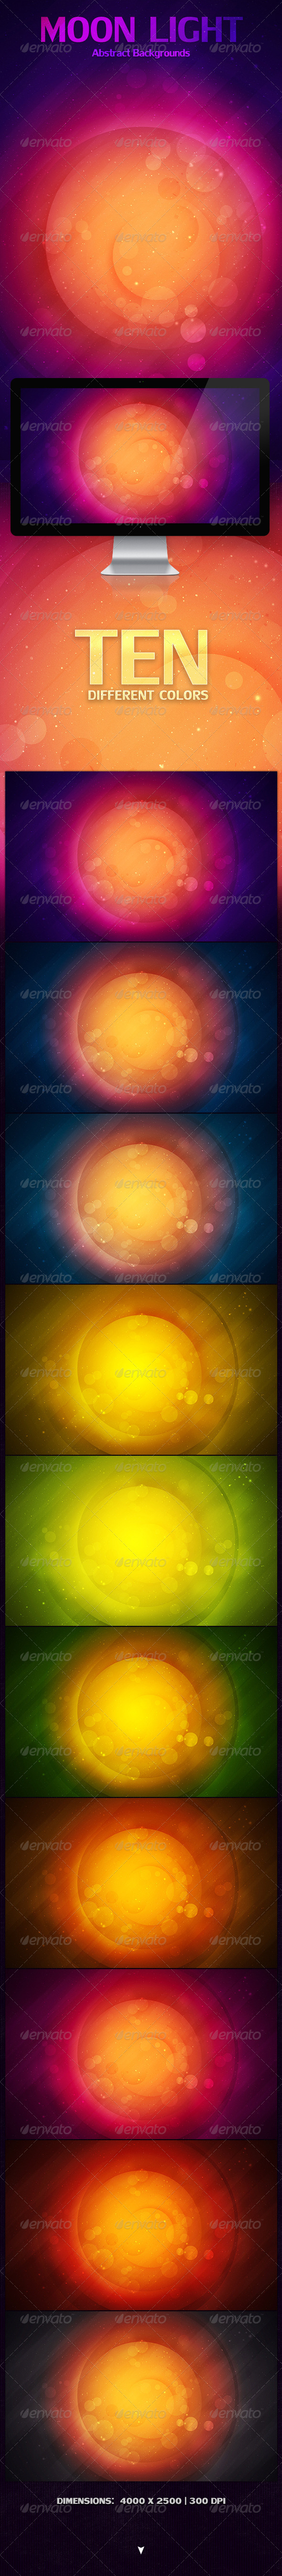 GraphicRiver Moon Light Abstract Backgrounds 4228075